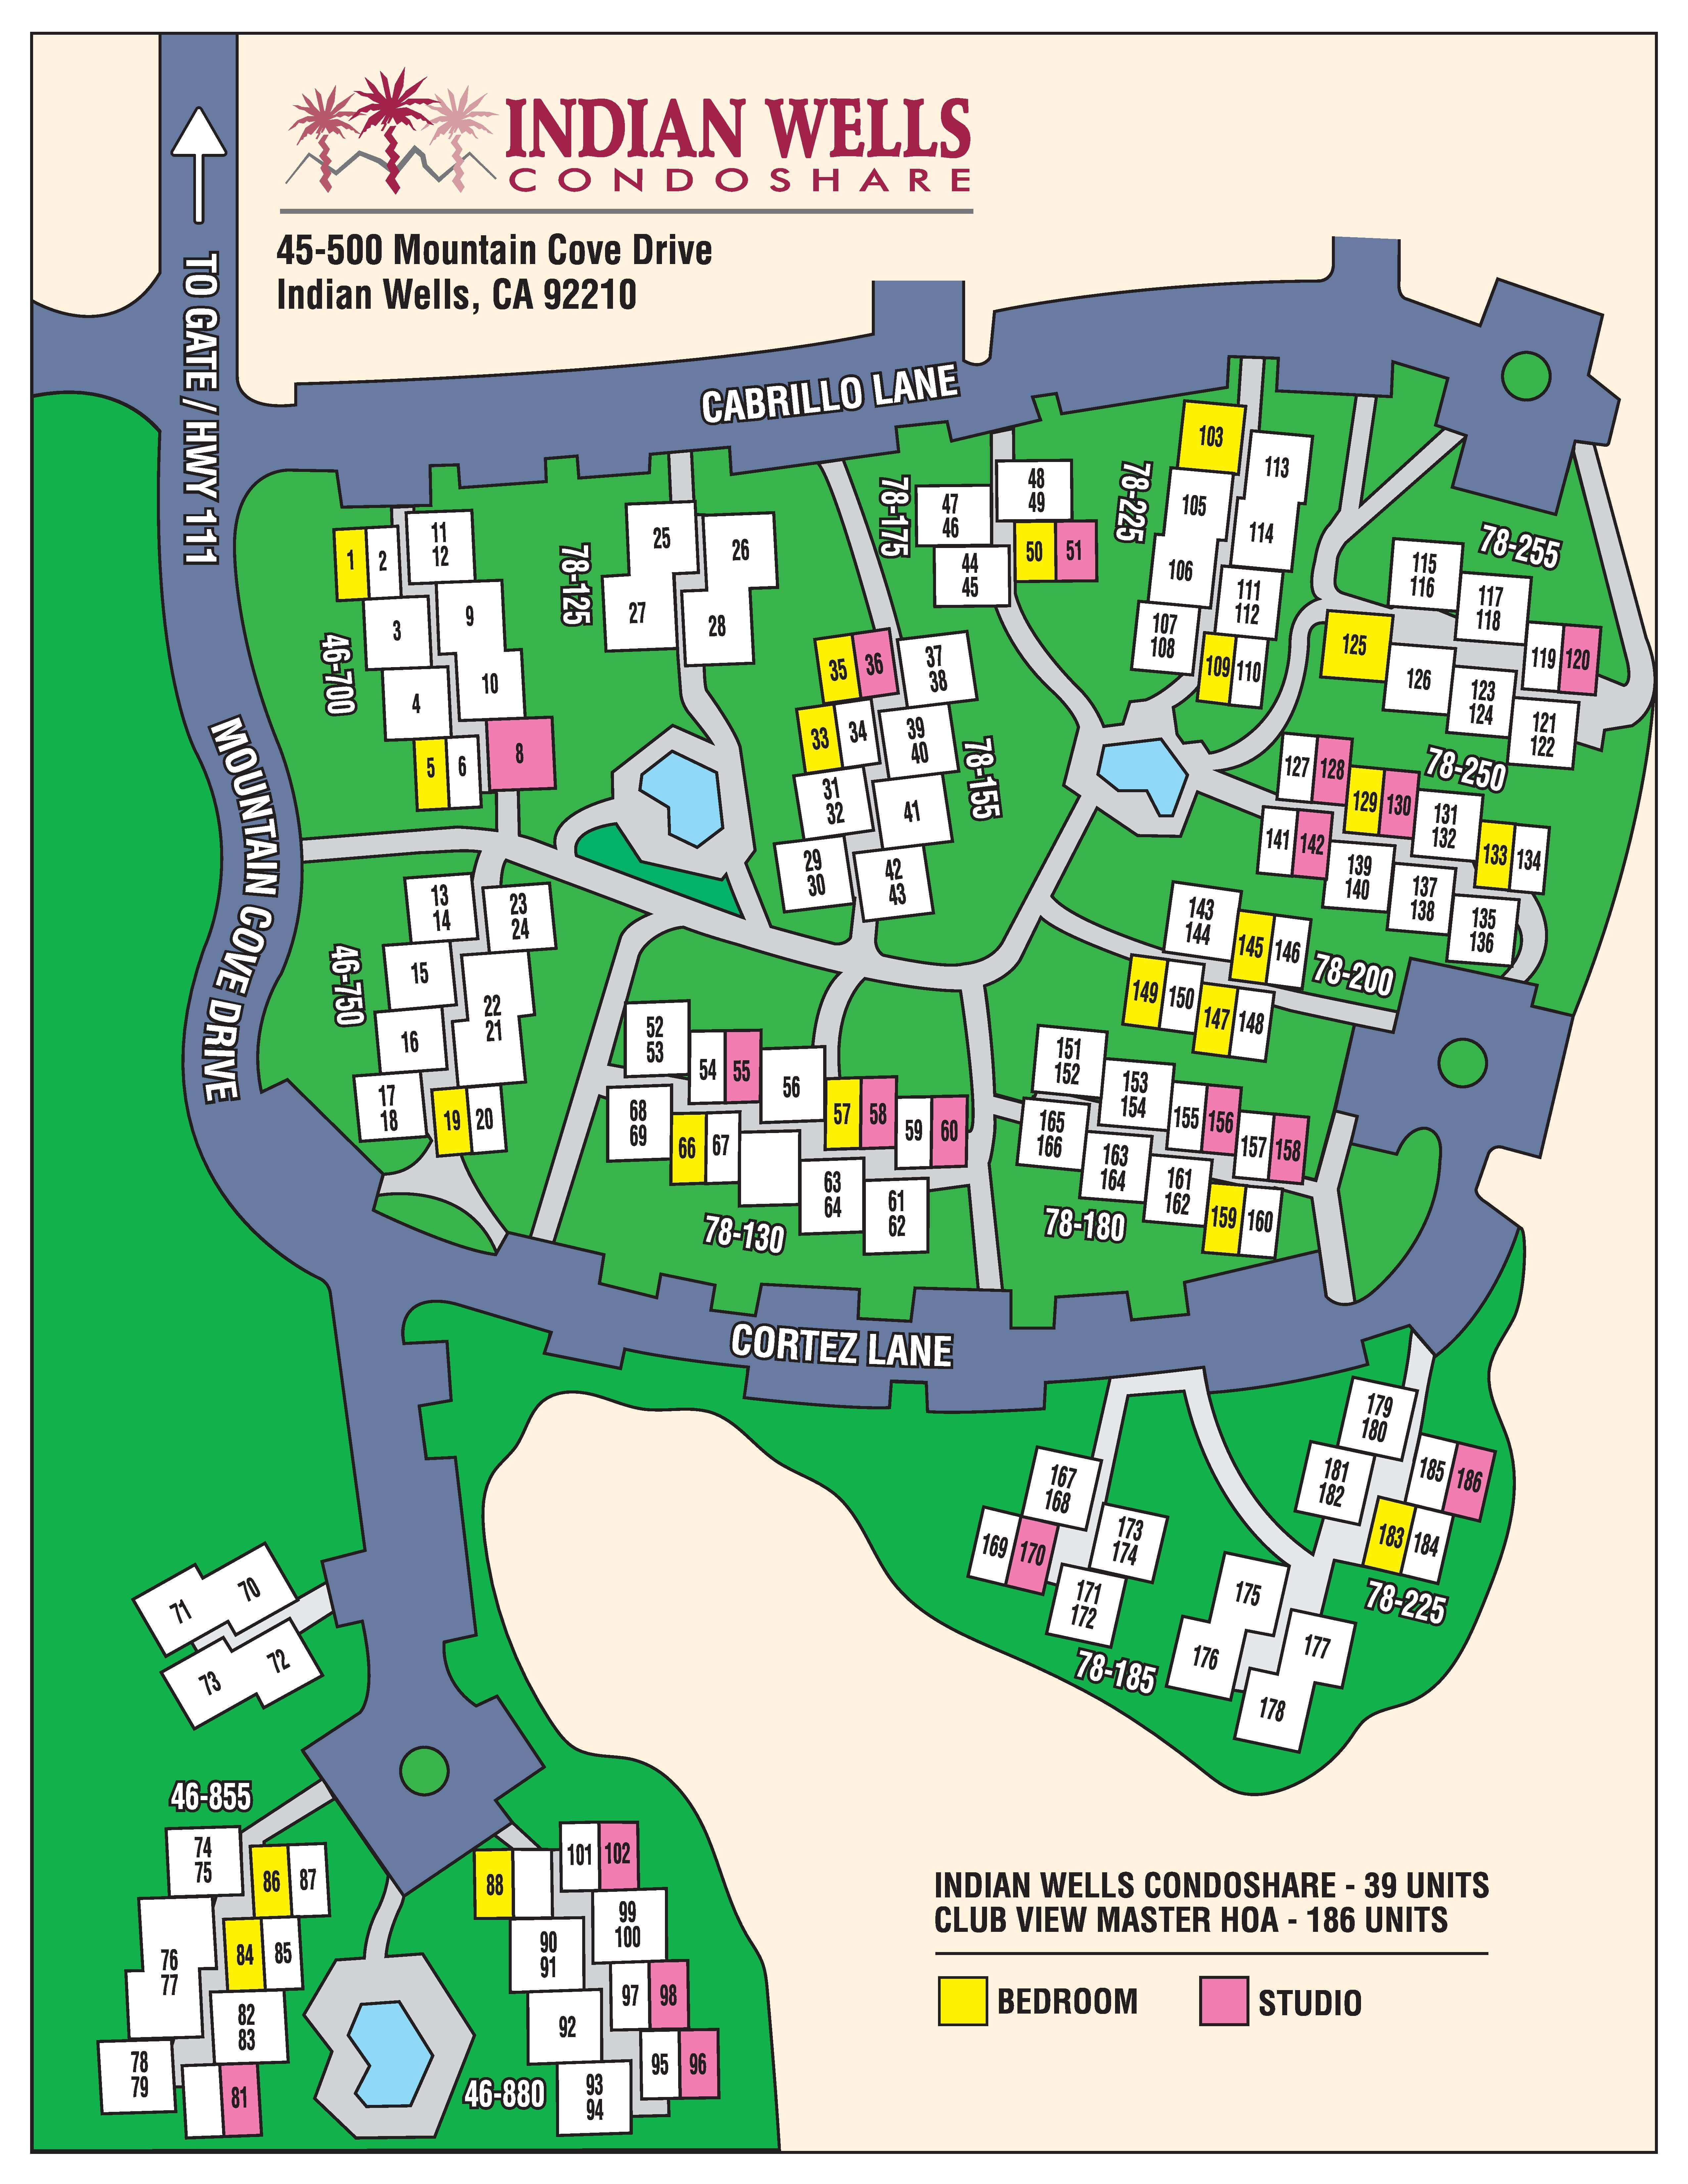 IWCS_SiteMap-page-001 (1)